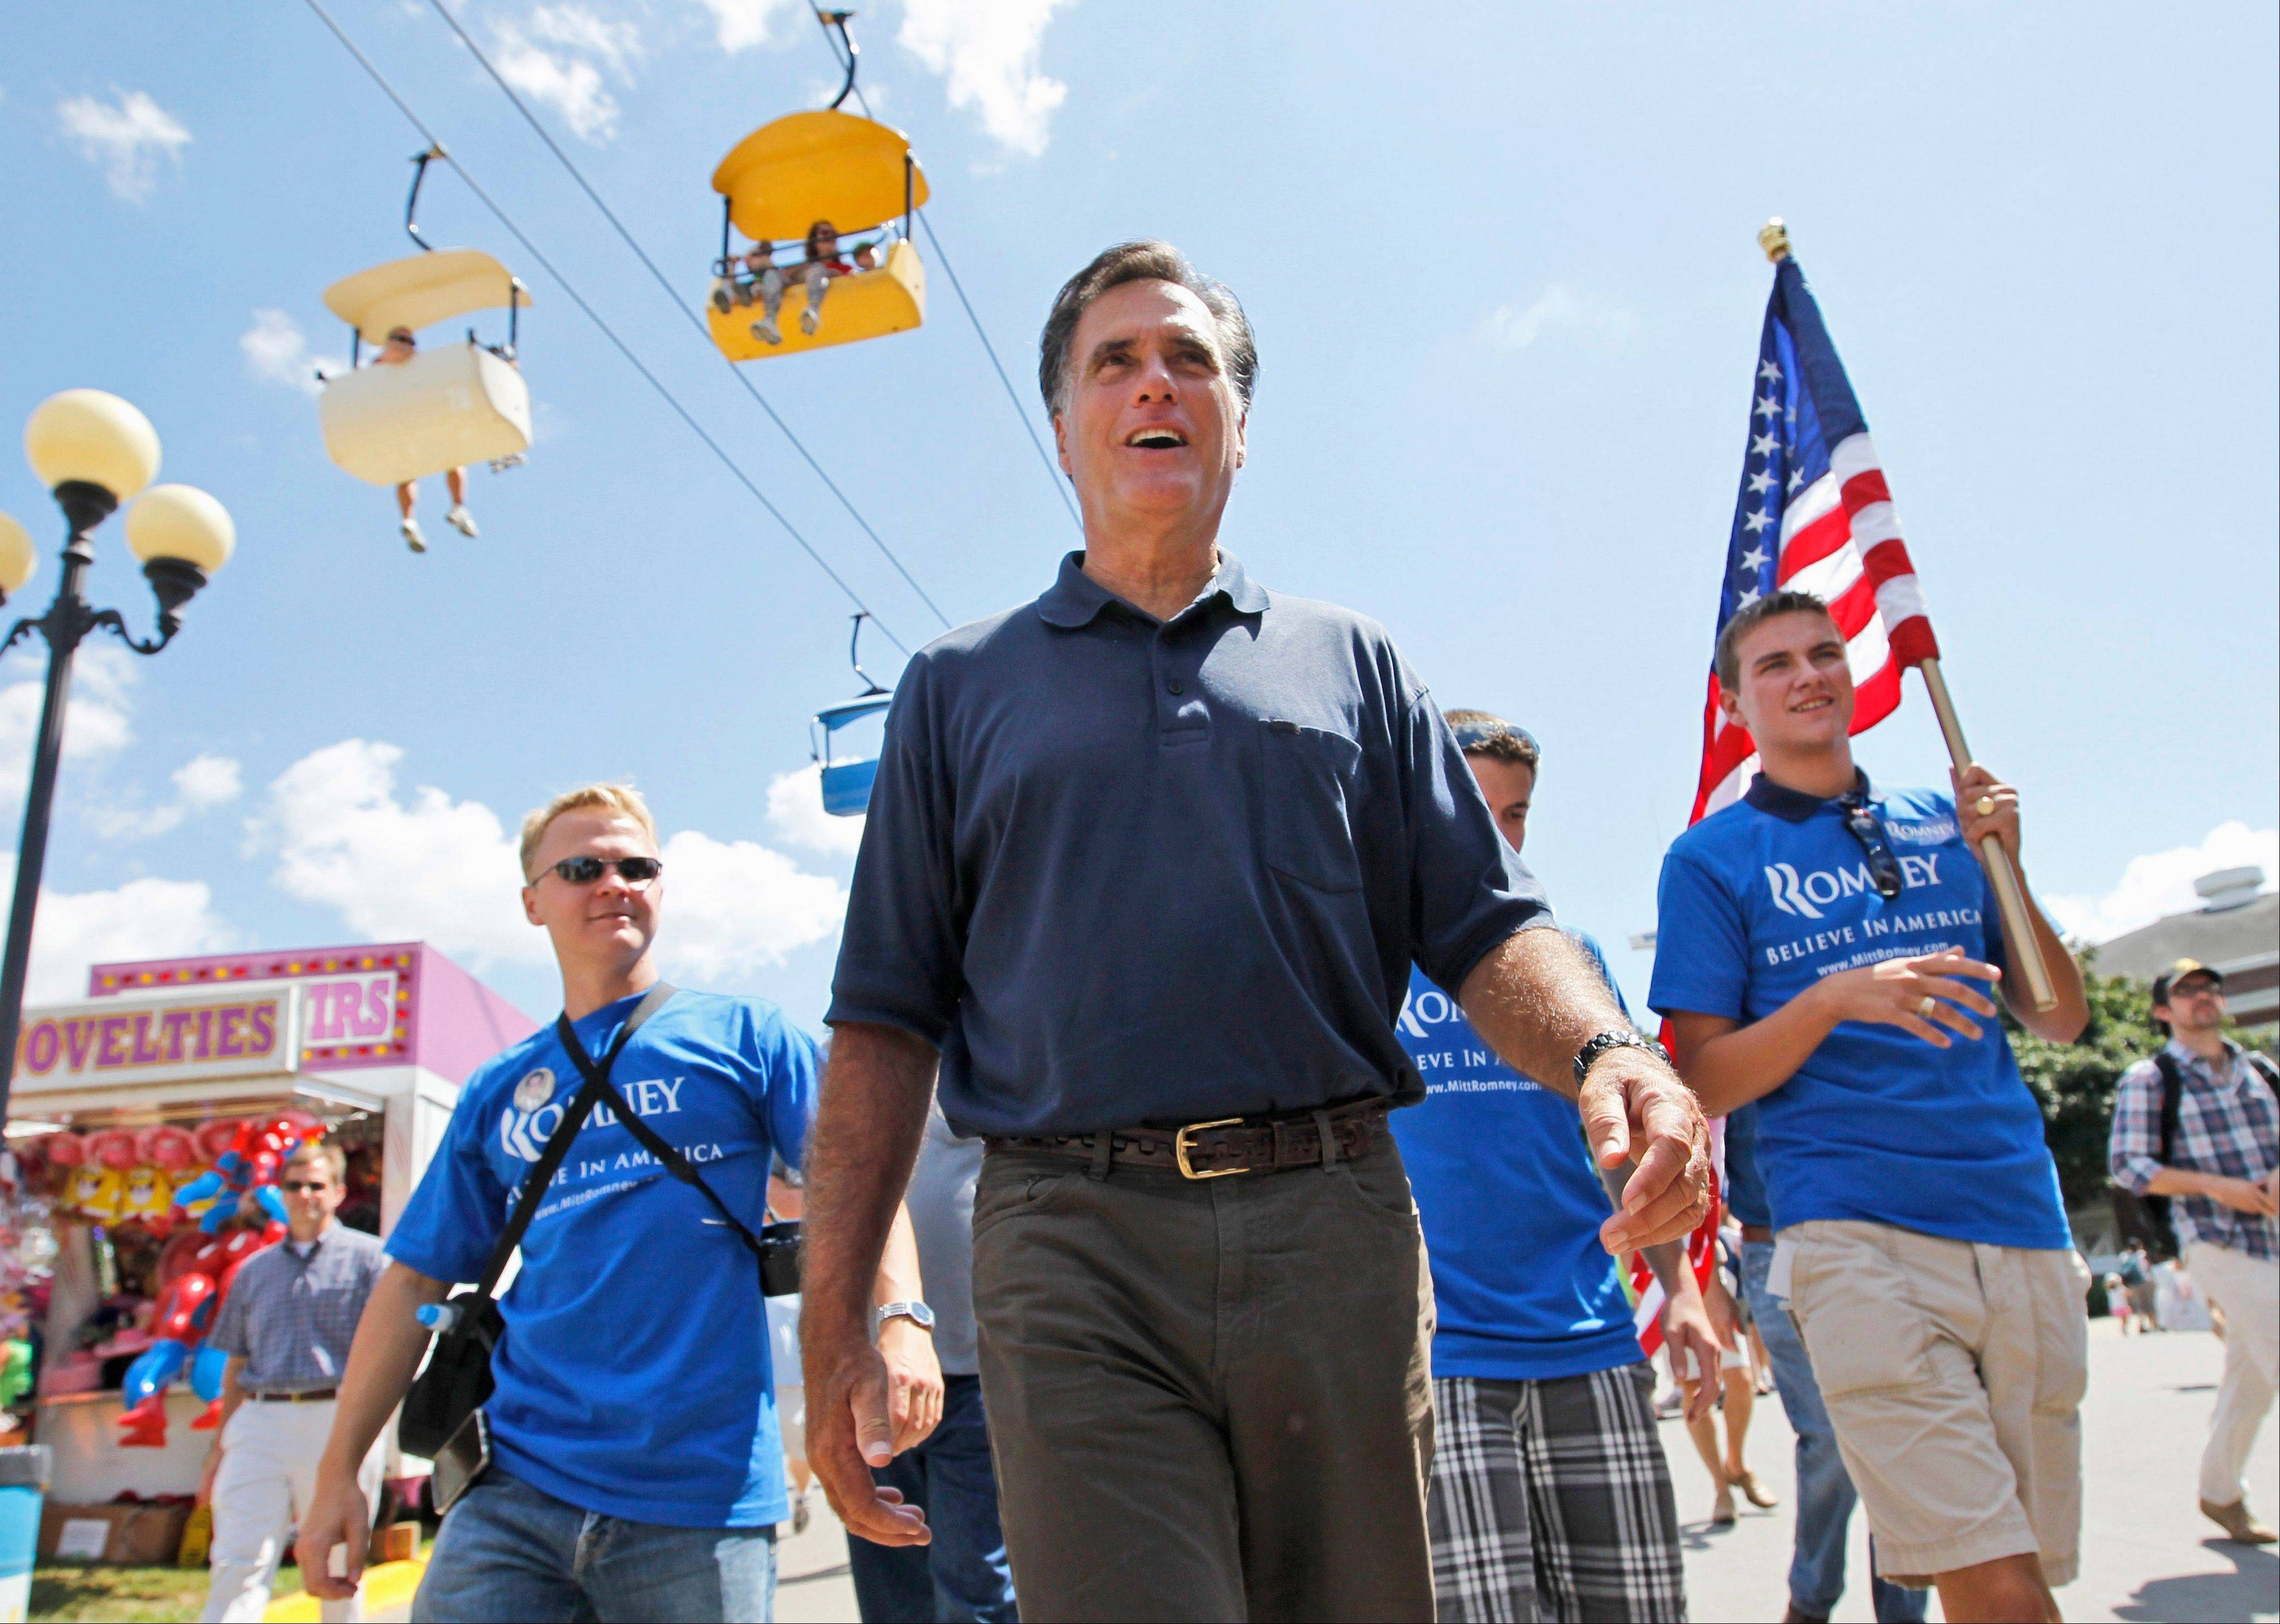 Former Massachusetts Gov. Mitt Romney campaigns at the Iowa State Fair in Des Moines on Thursday.